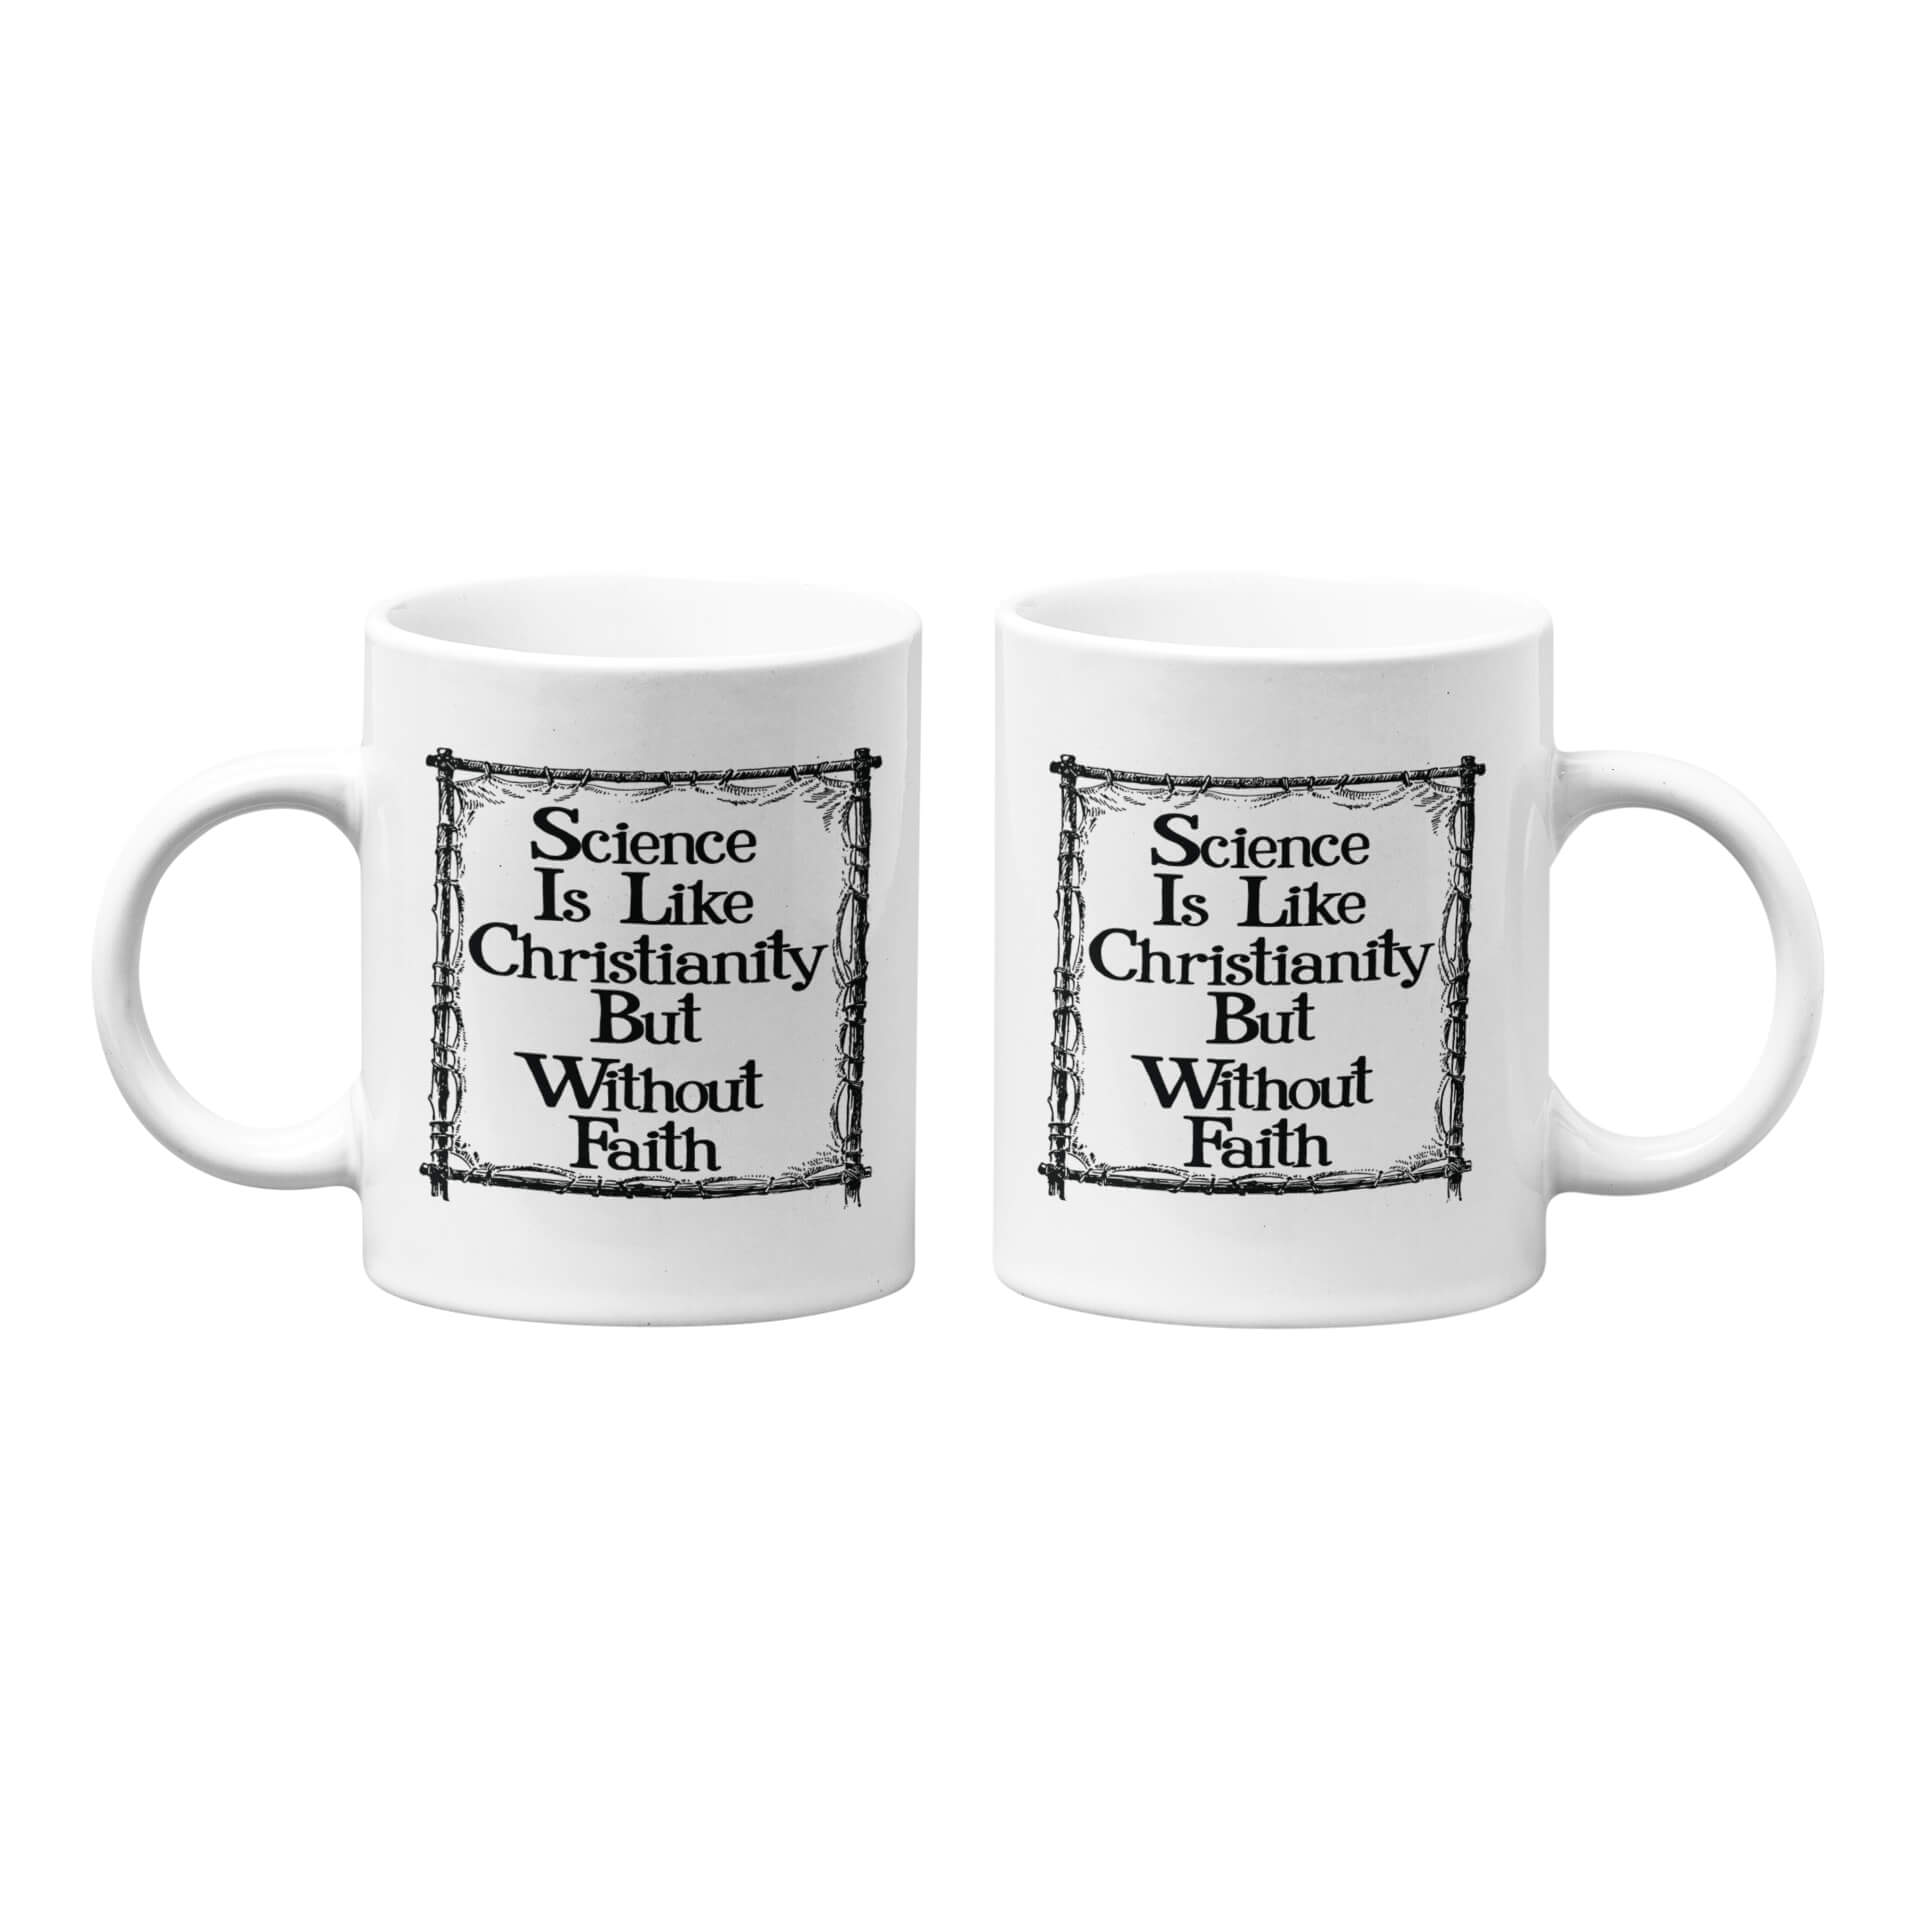 Science Is Like Christianity But Without Faith Mug